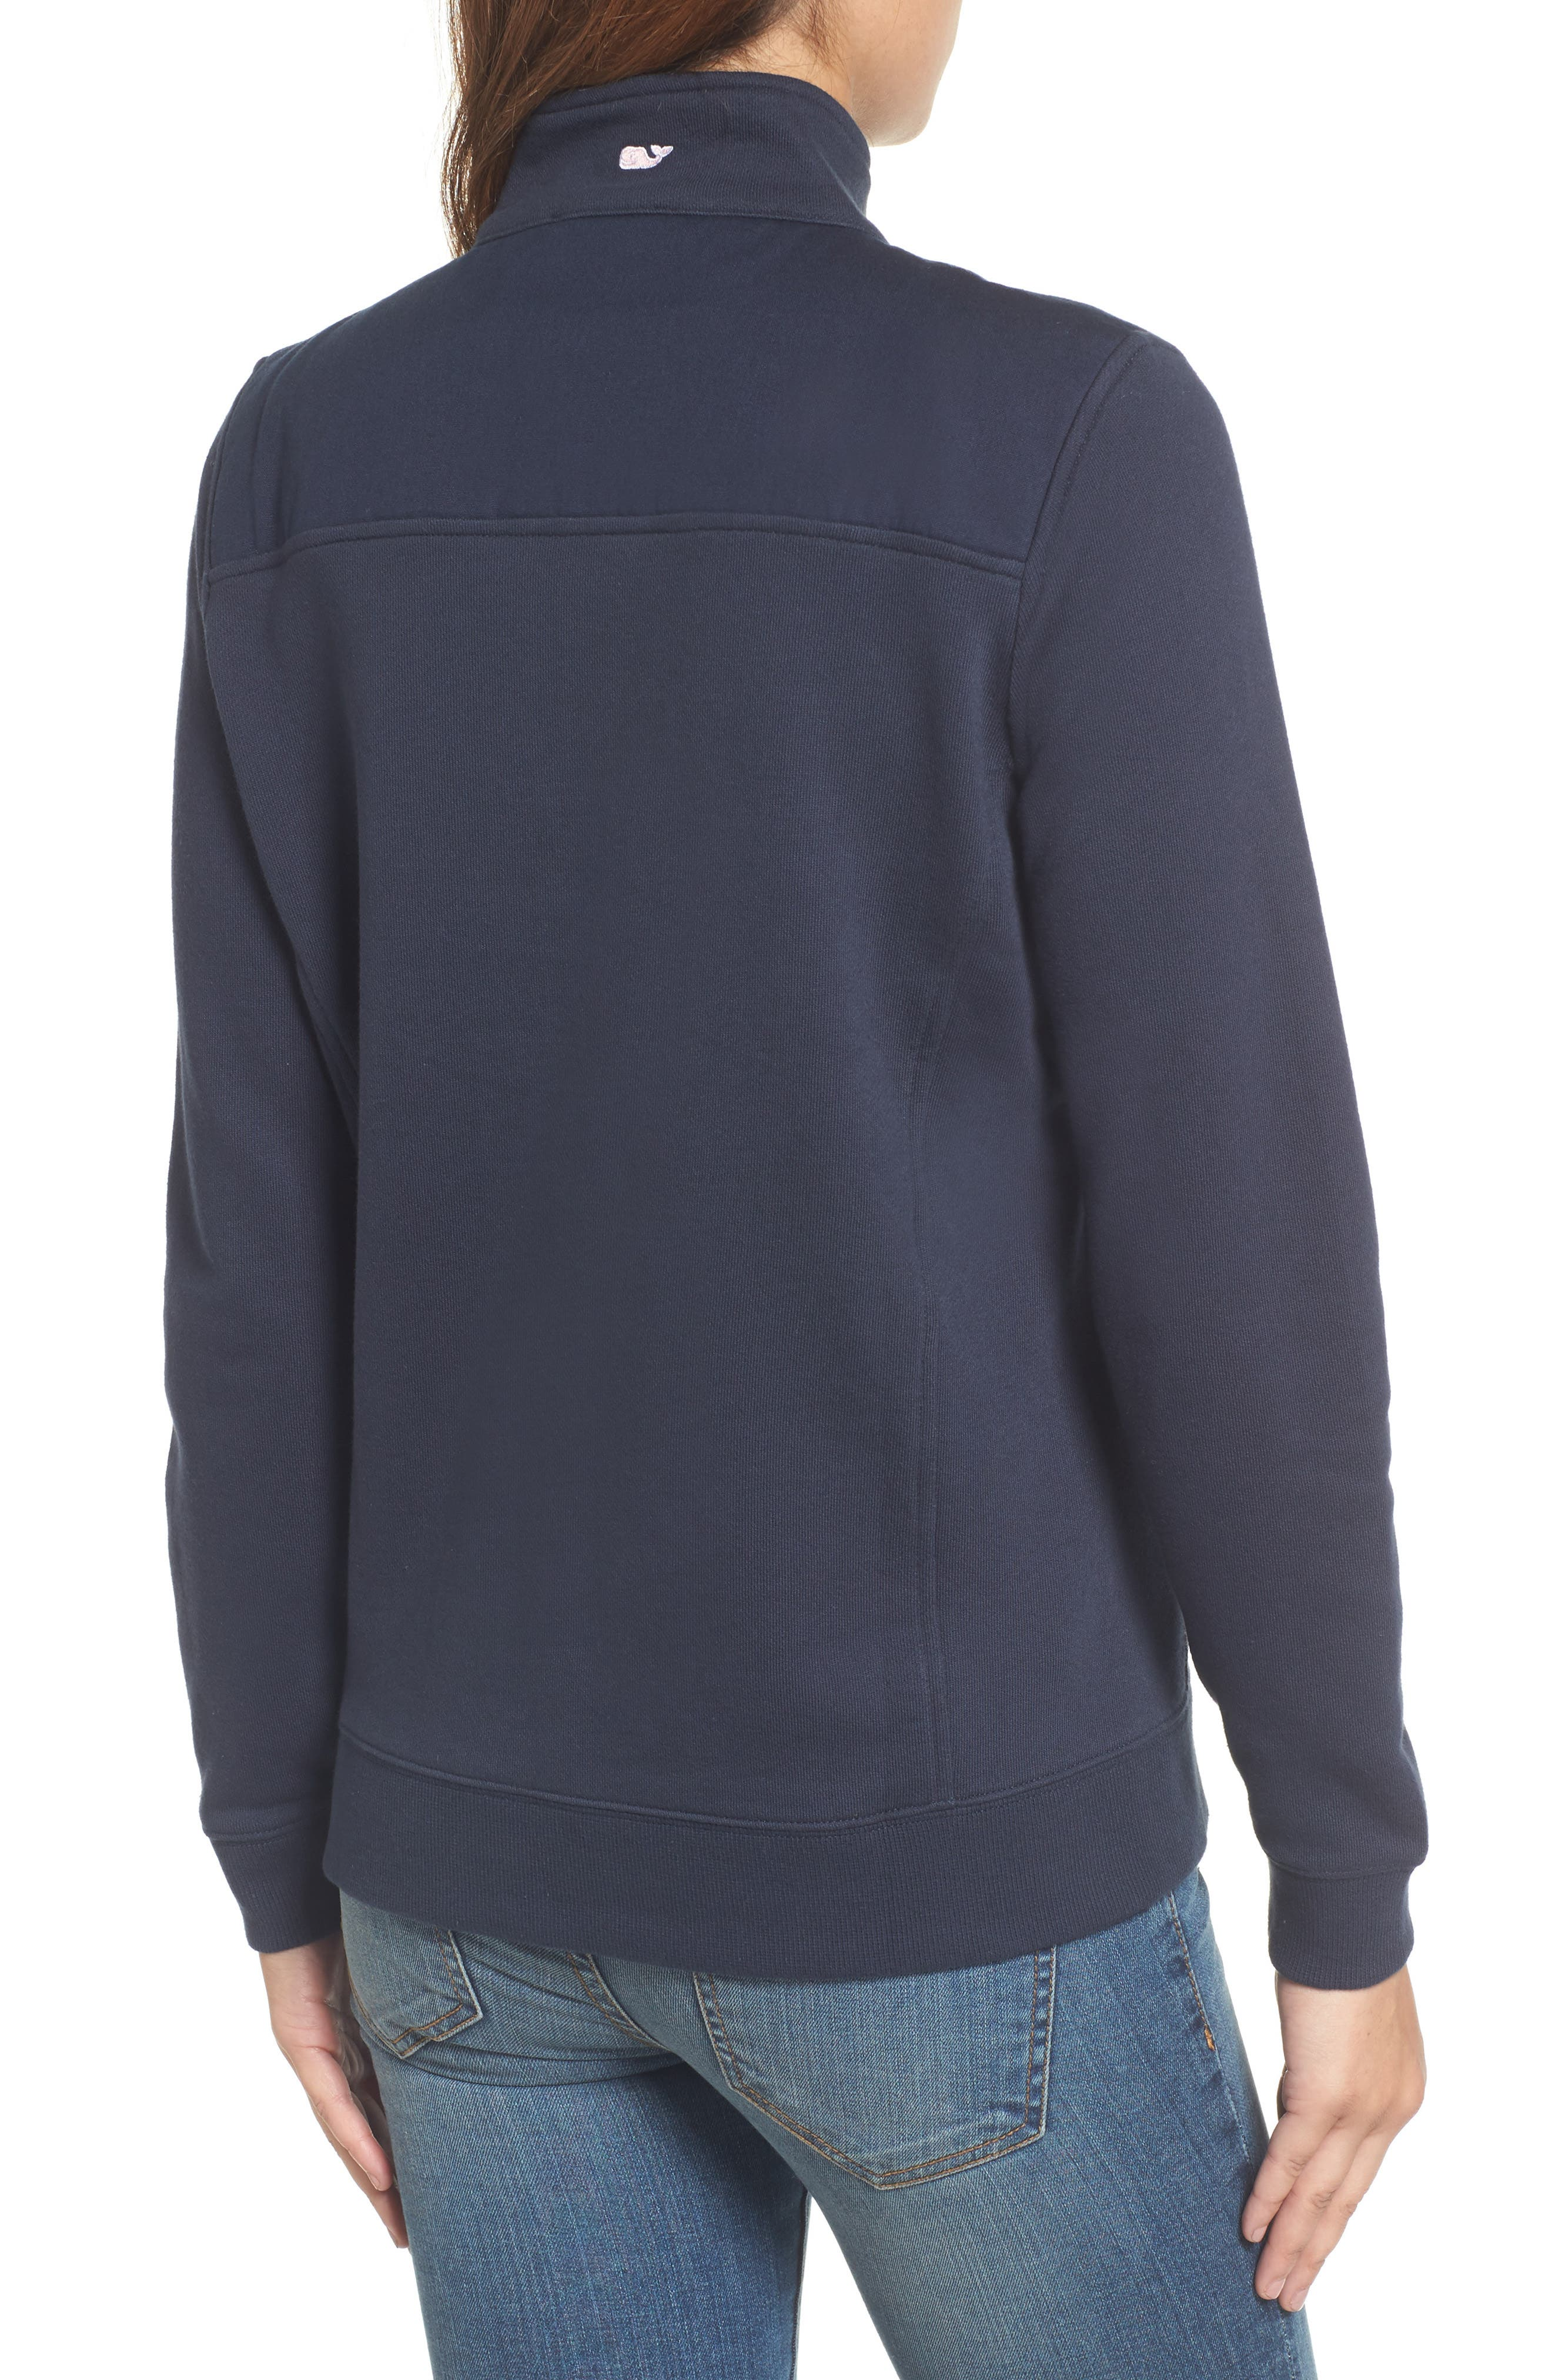 VINEYARD VINES,                             Shep Half Zip French Terry Pullover,                             Alternate thumbnail 2, color,                             400